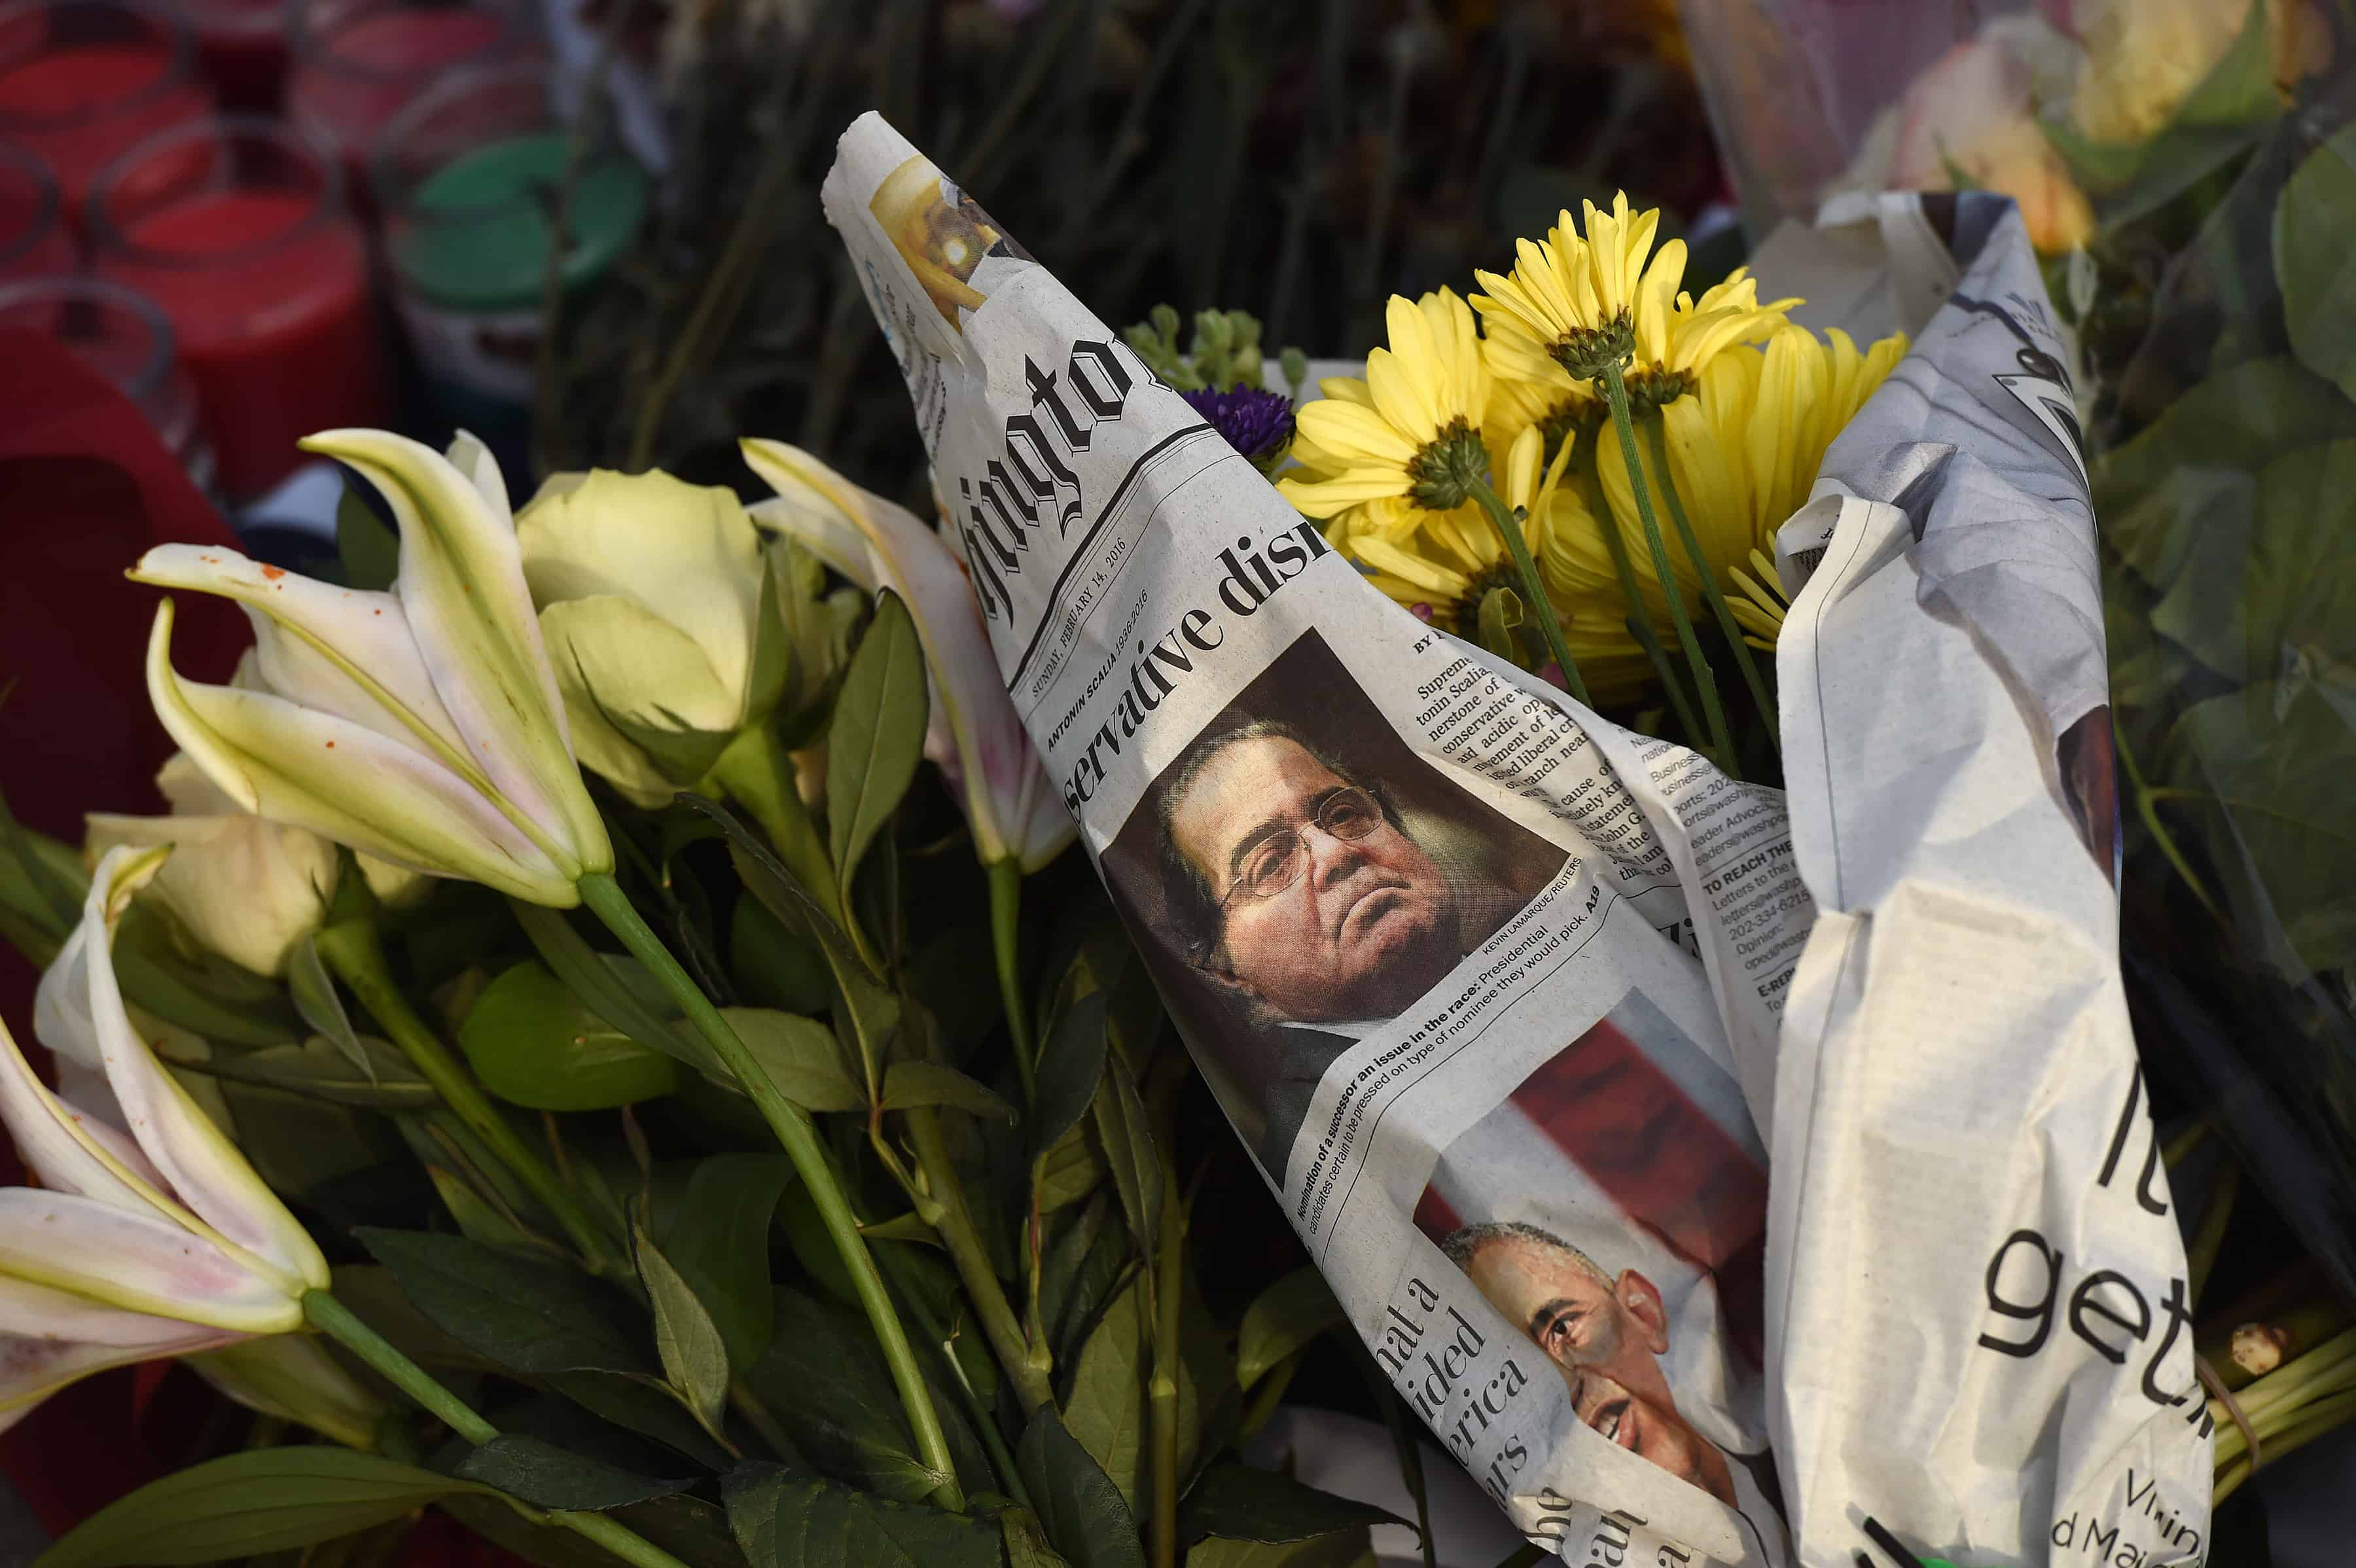 A makeshift memorial for U.S. Supreme Court Justice Antonin Scalia